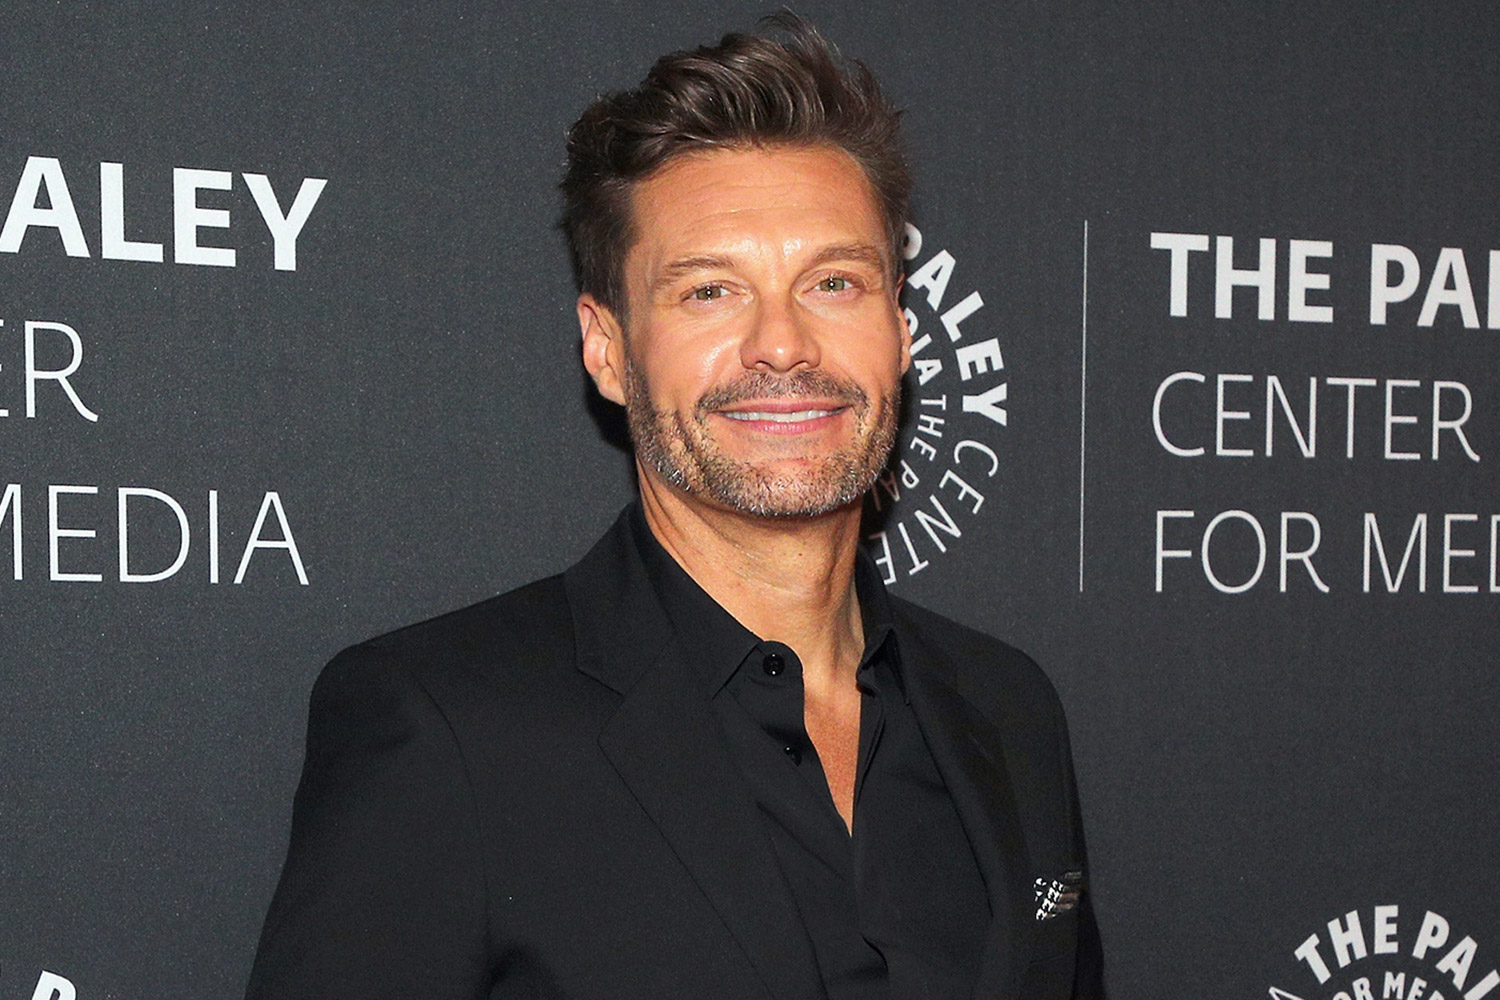 Ryan Seacrest Biography, Facts & Life Story Updated 2021